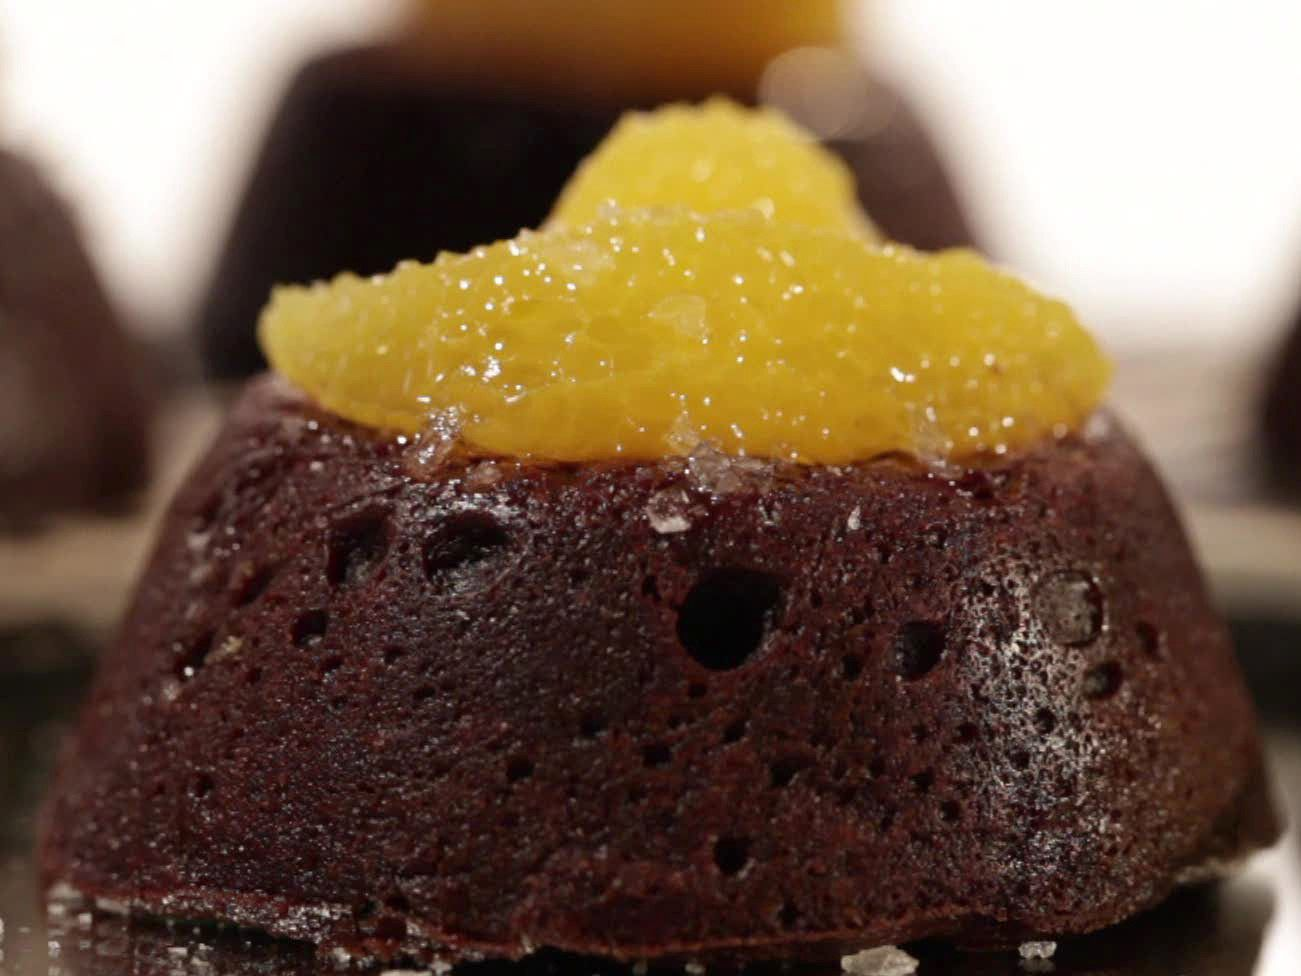 Check out Orange Chocolate Lava Cakes Its so easy to make